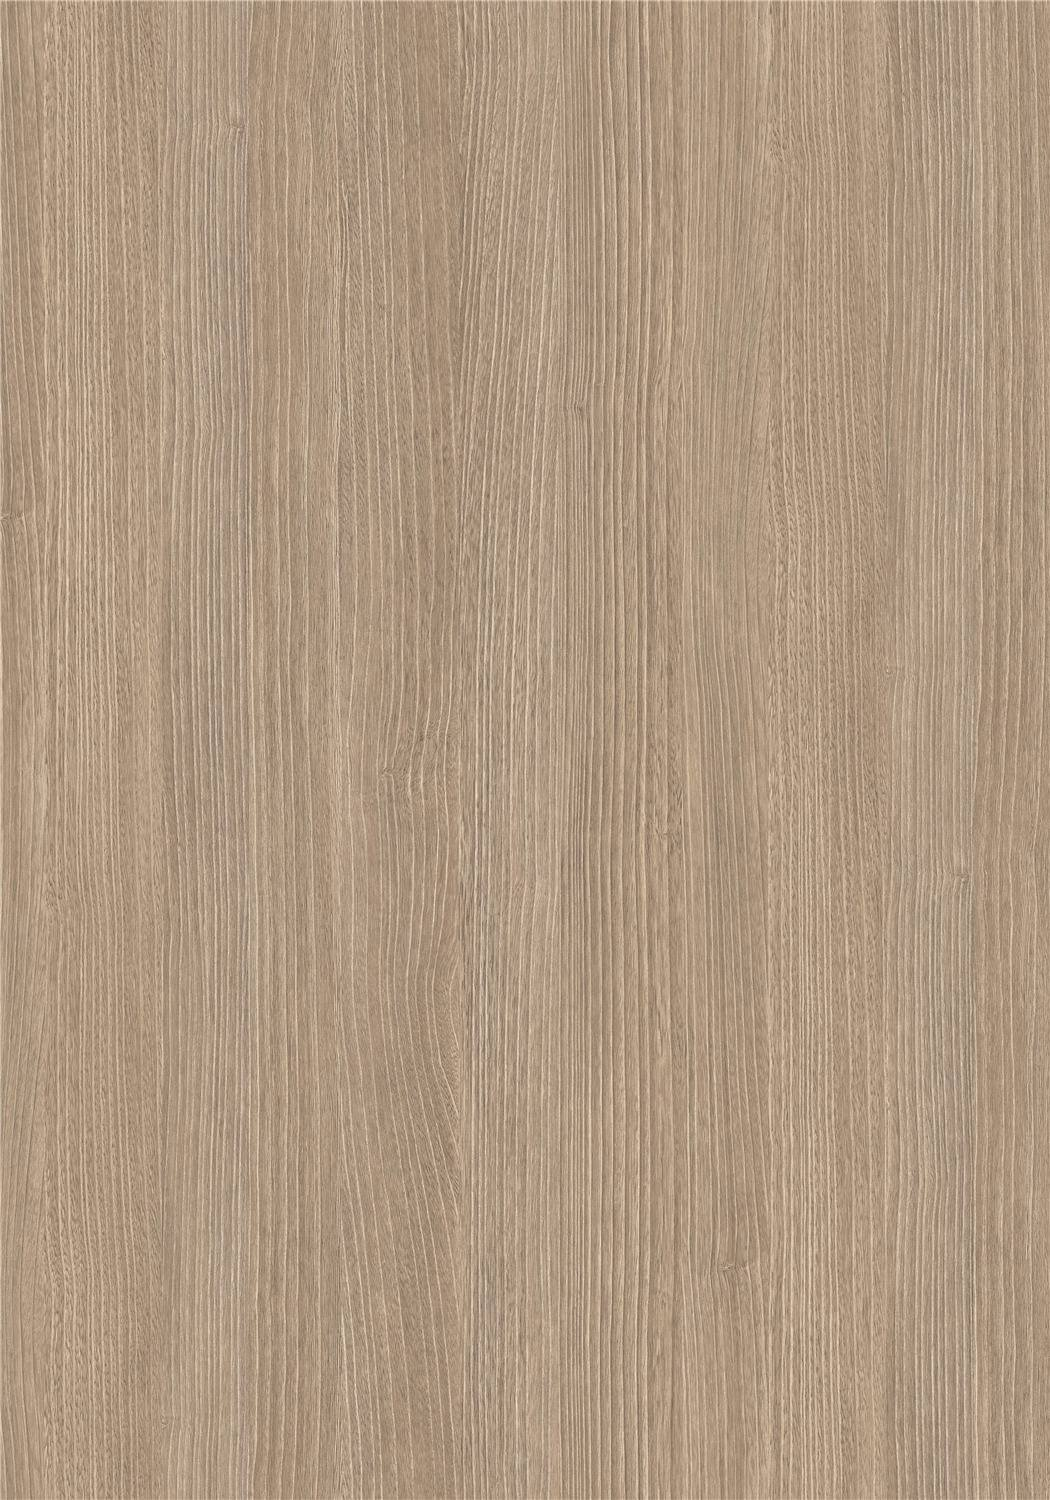 78188  idecor decor paper oak up to 7ft